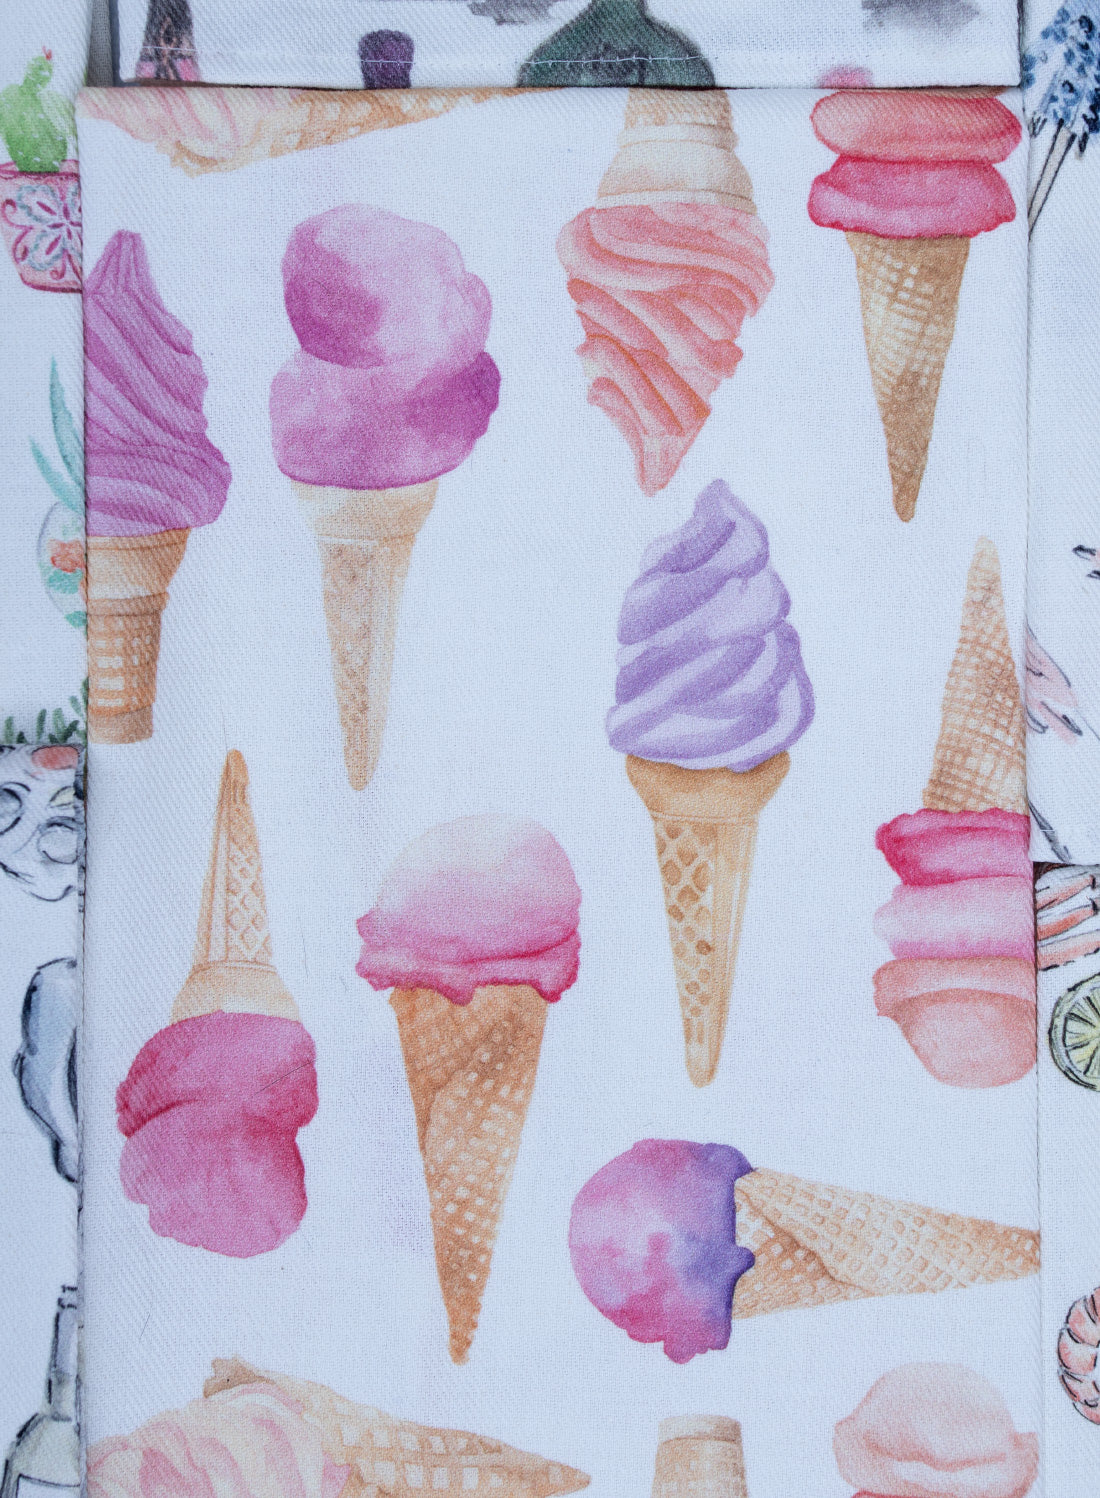 """Glaces - Ice Cream"" - Linge de maison / Kitchen Linen"